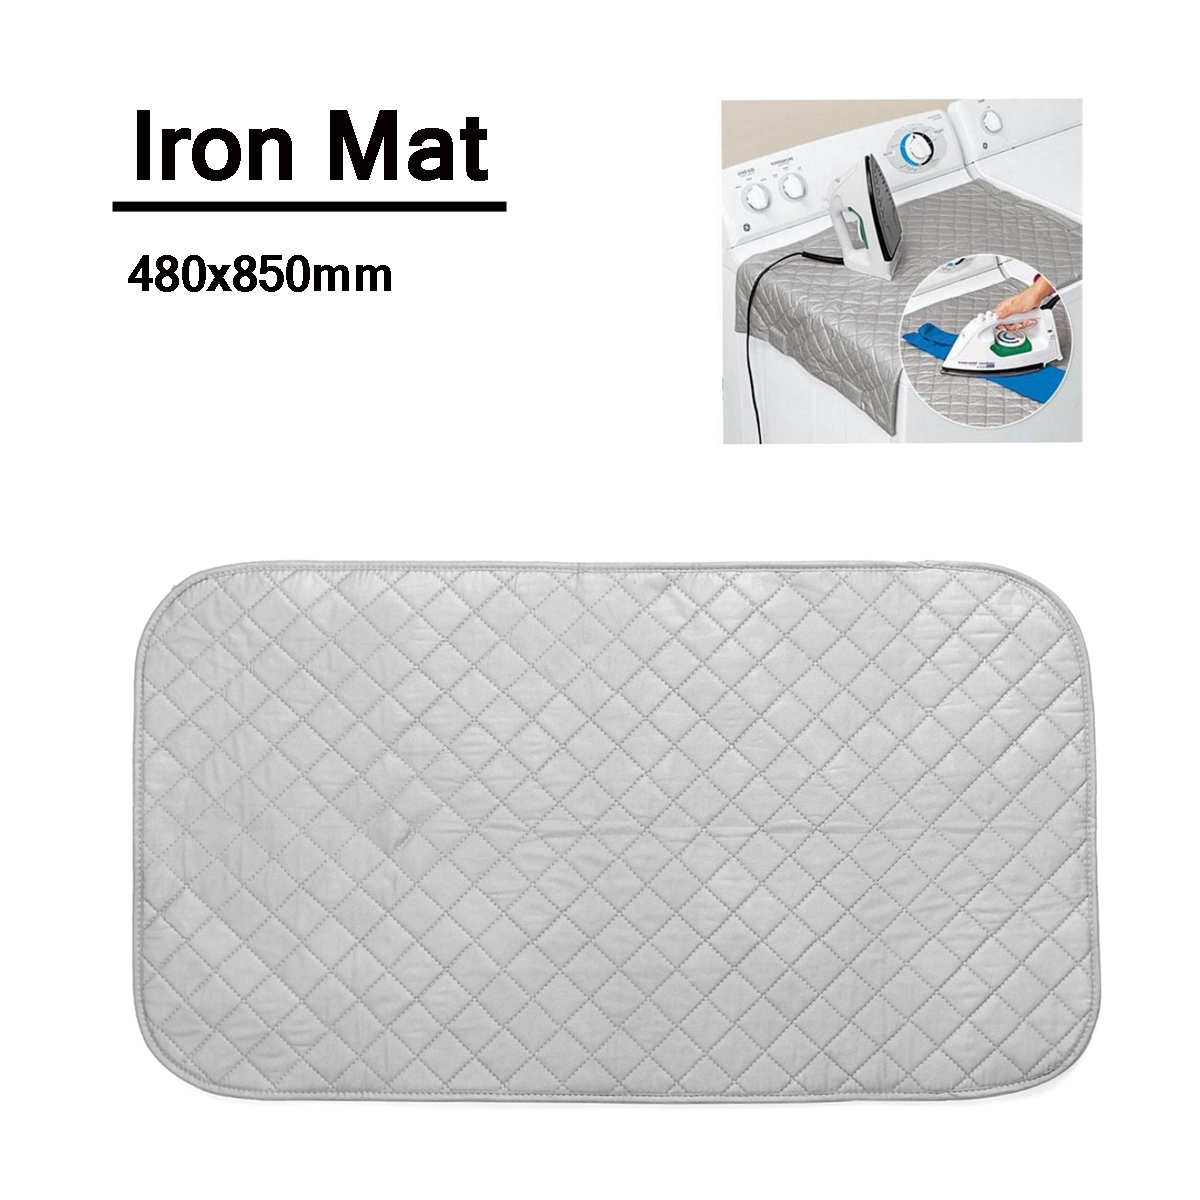 """Portable Compact Ironing Boards Ironing Mat Mesh Cloth Ironing Mattress for Home Bathroom Laundry 19x33"""" Inches"""